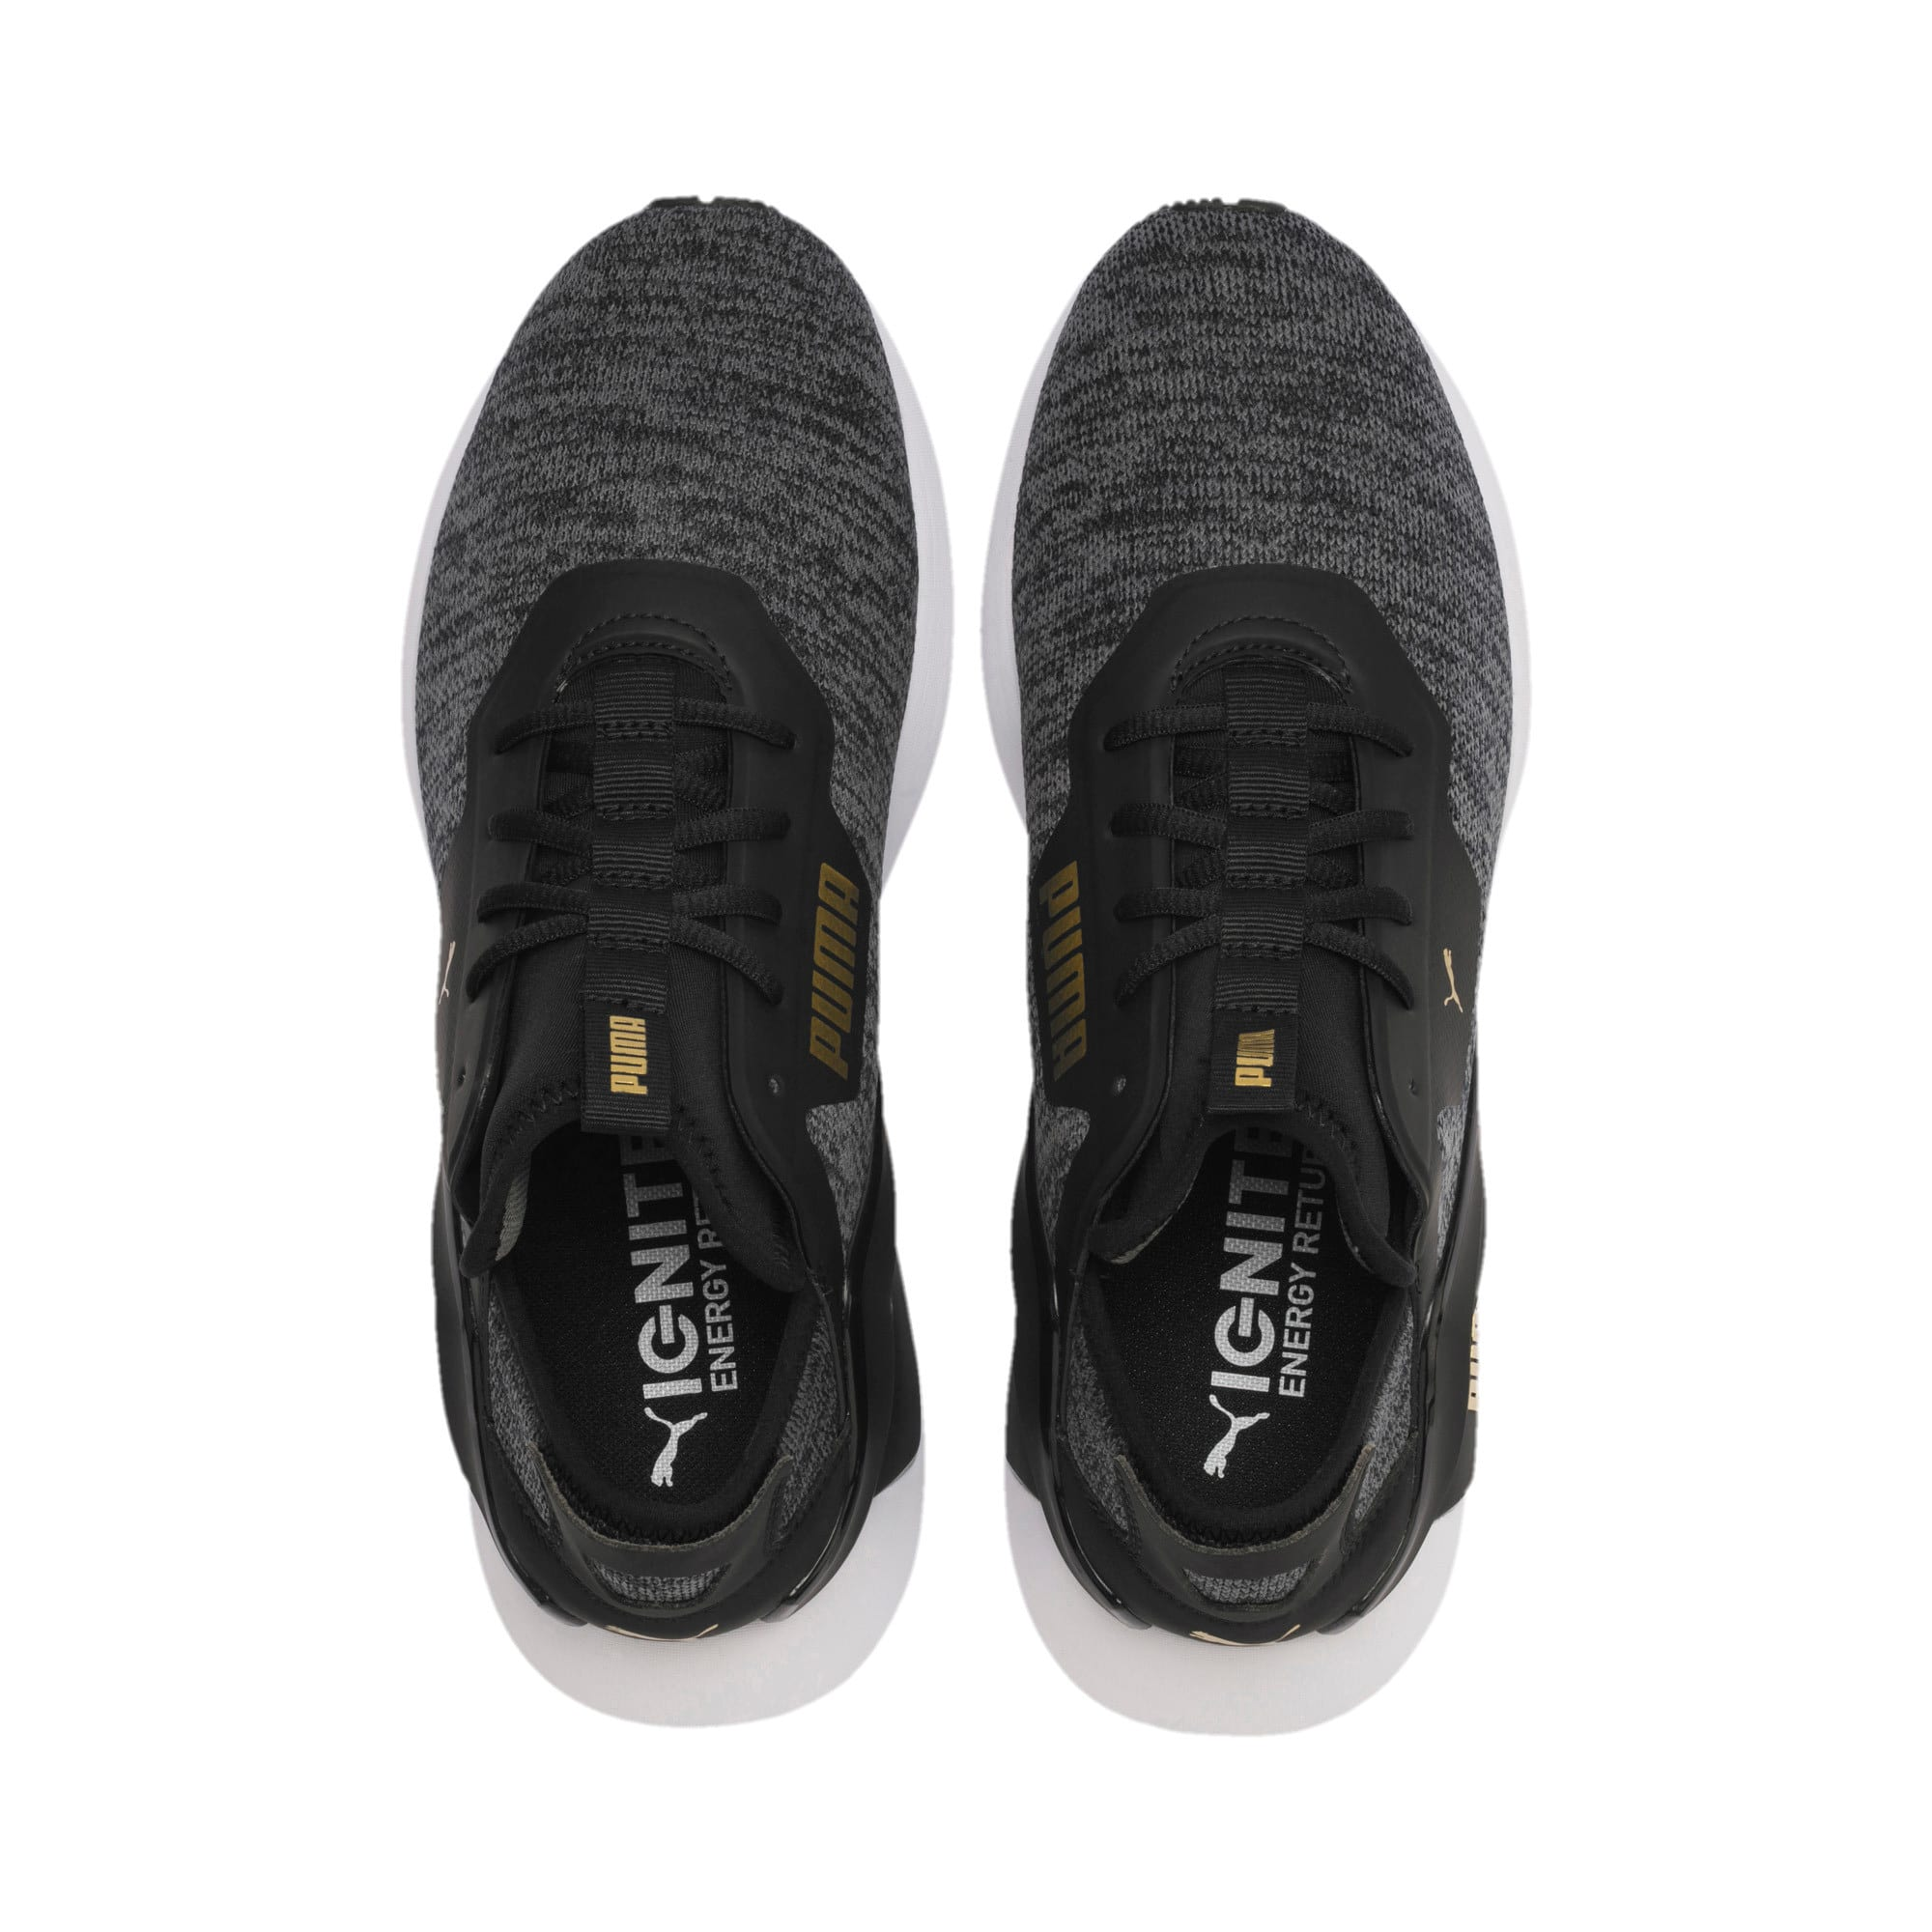 Thumbnail 7 of Rogue X Knit Men's Trainers, Black-CASTLEROCK-Gold, medium